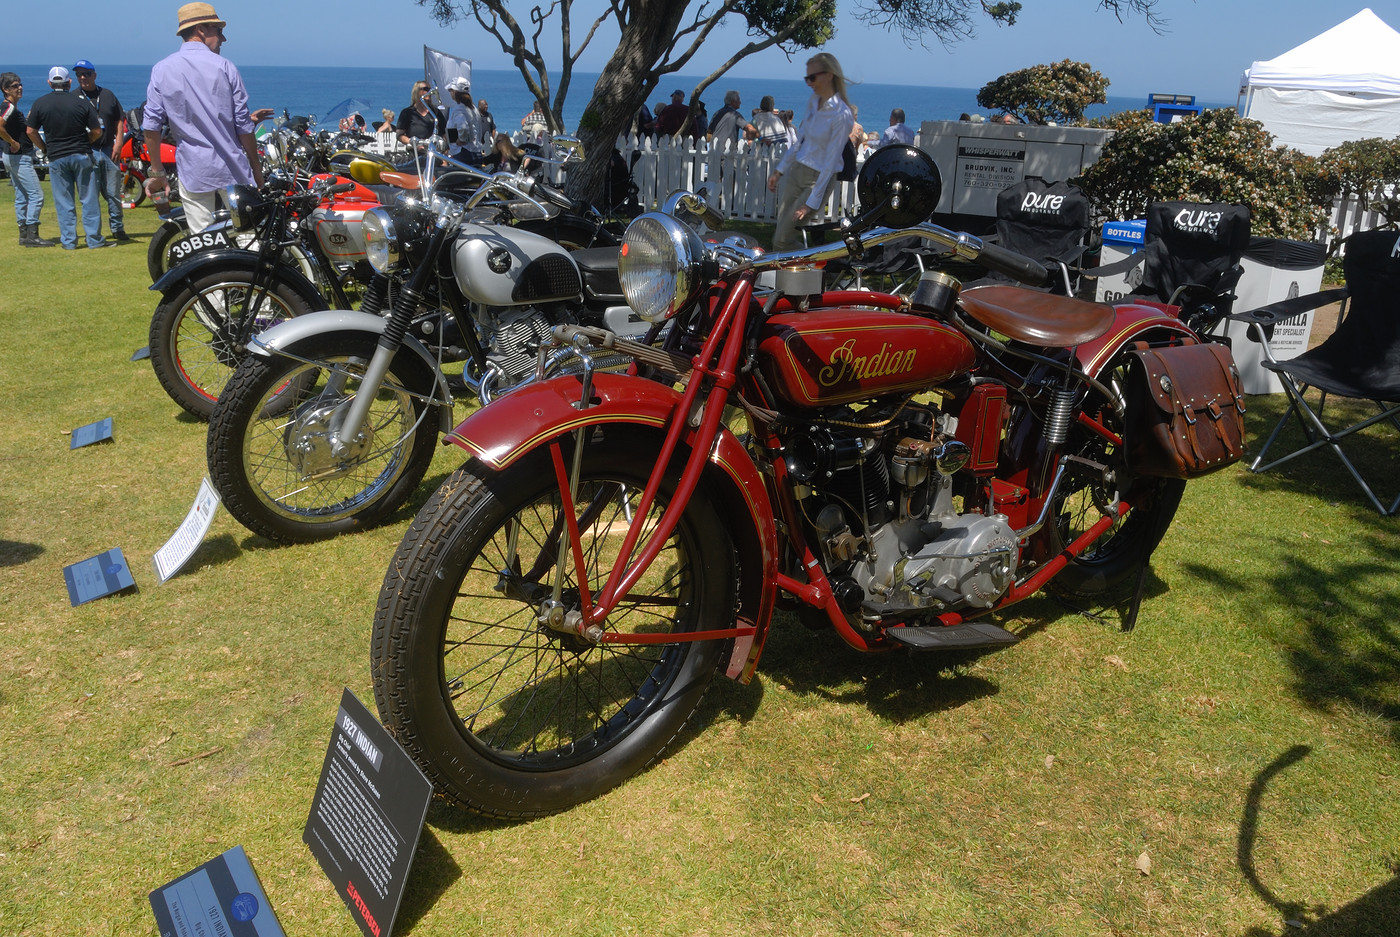 1927 Indian Big Chief formerly owned by Steve McQueen presented by the Petersen